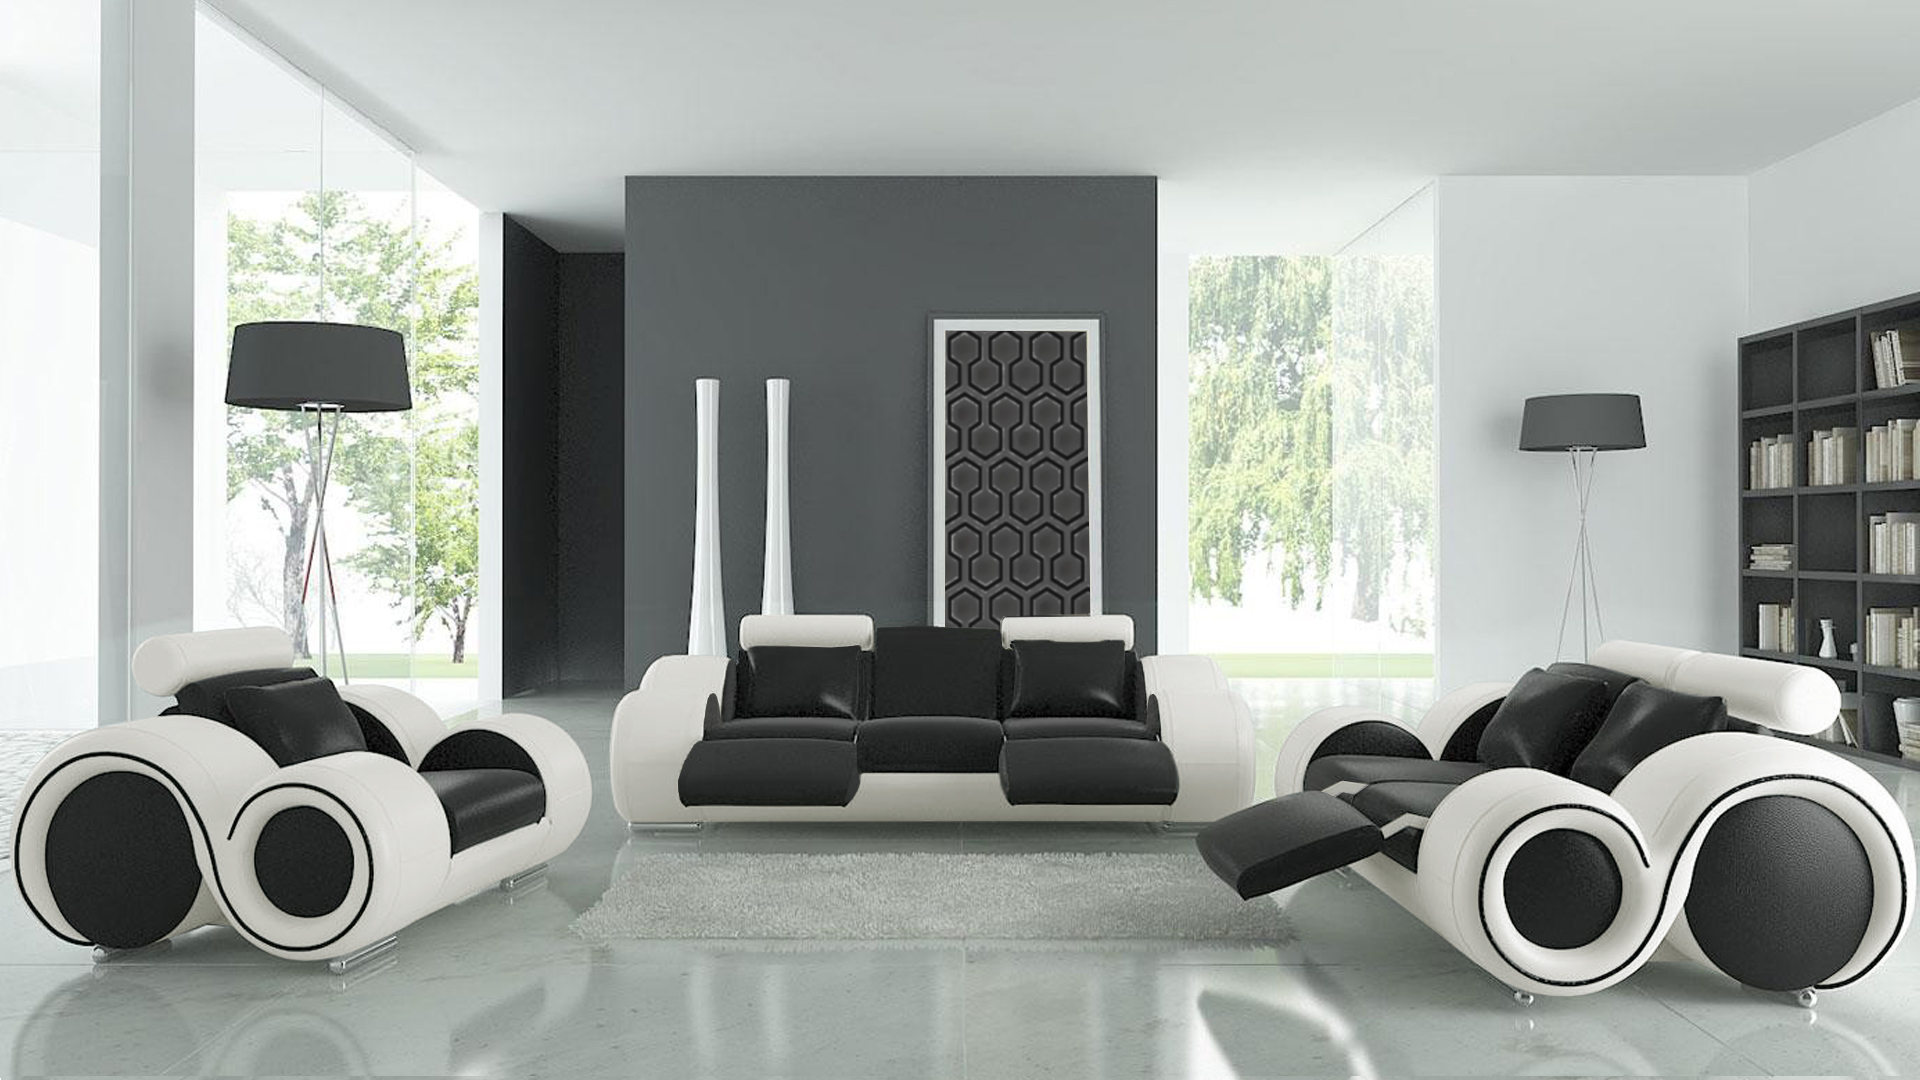 mobiliermoss repose pied tritoo maison et jardin. Black Bedroom Furniture Sets. Home Design Ideas